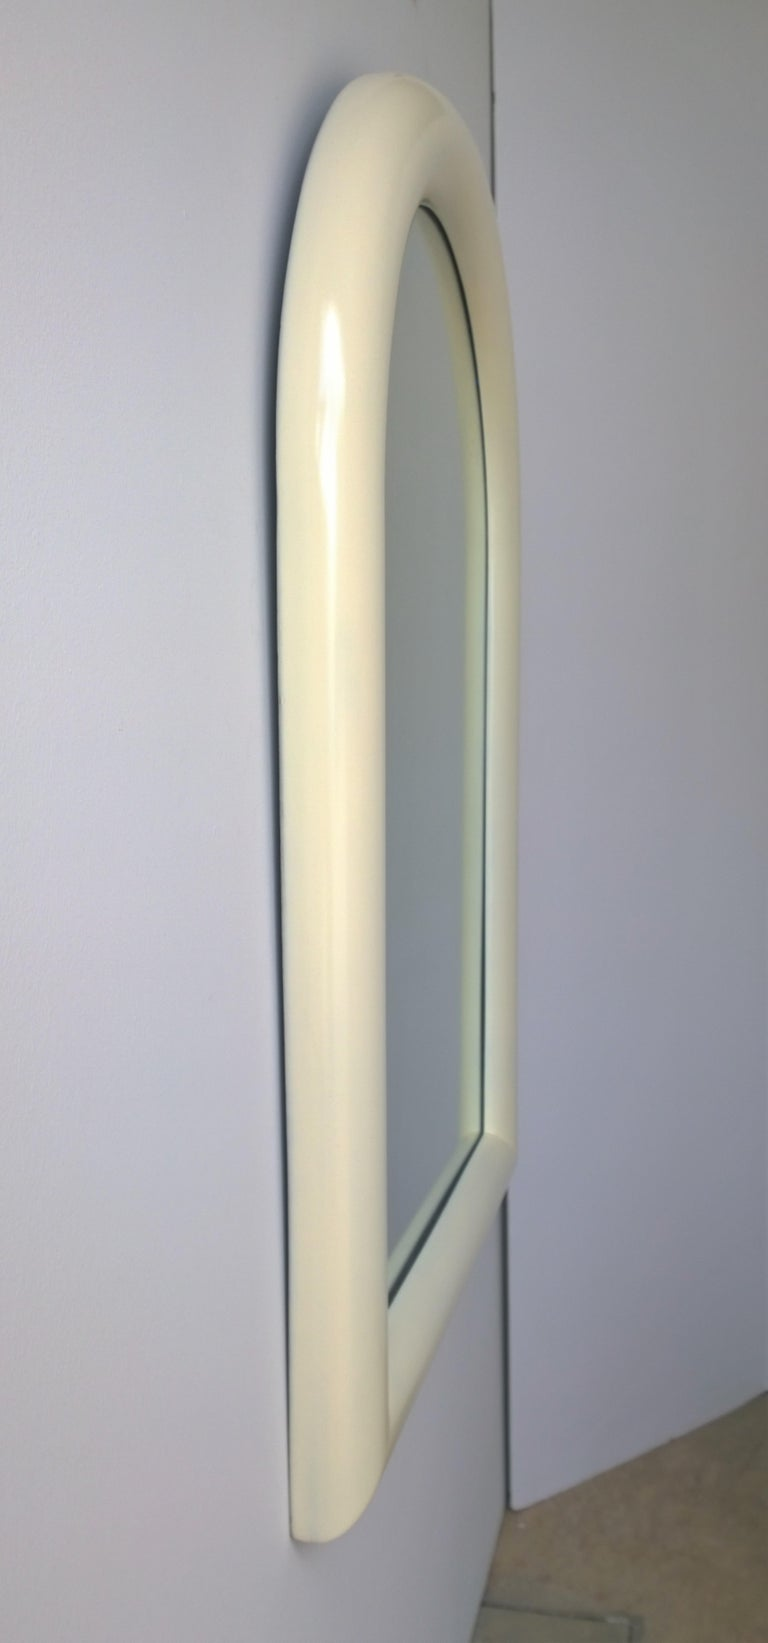 Pierre Cardin Attributed Arched Wall Mirror Newly Lacquered Wood in Off-White In Good Condition For Sale In Houston, TX